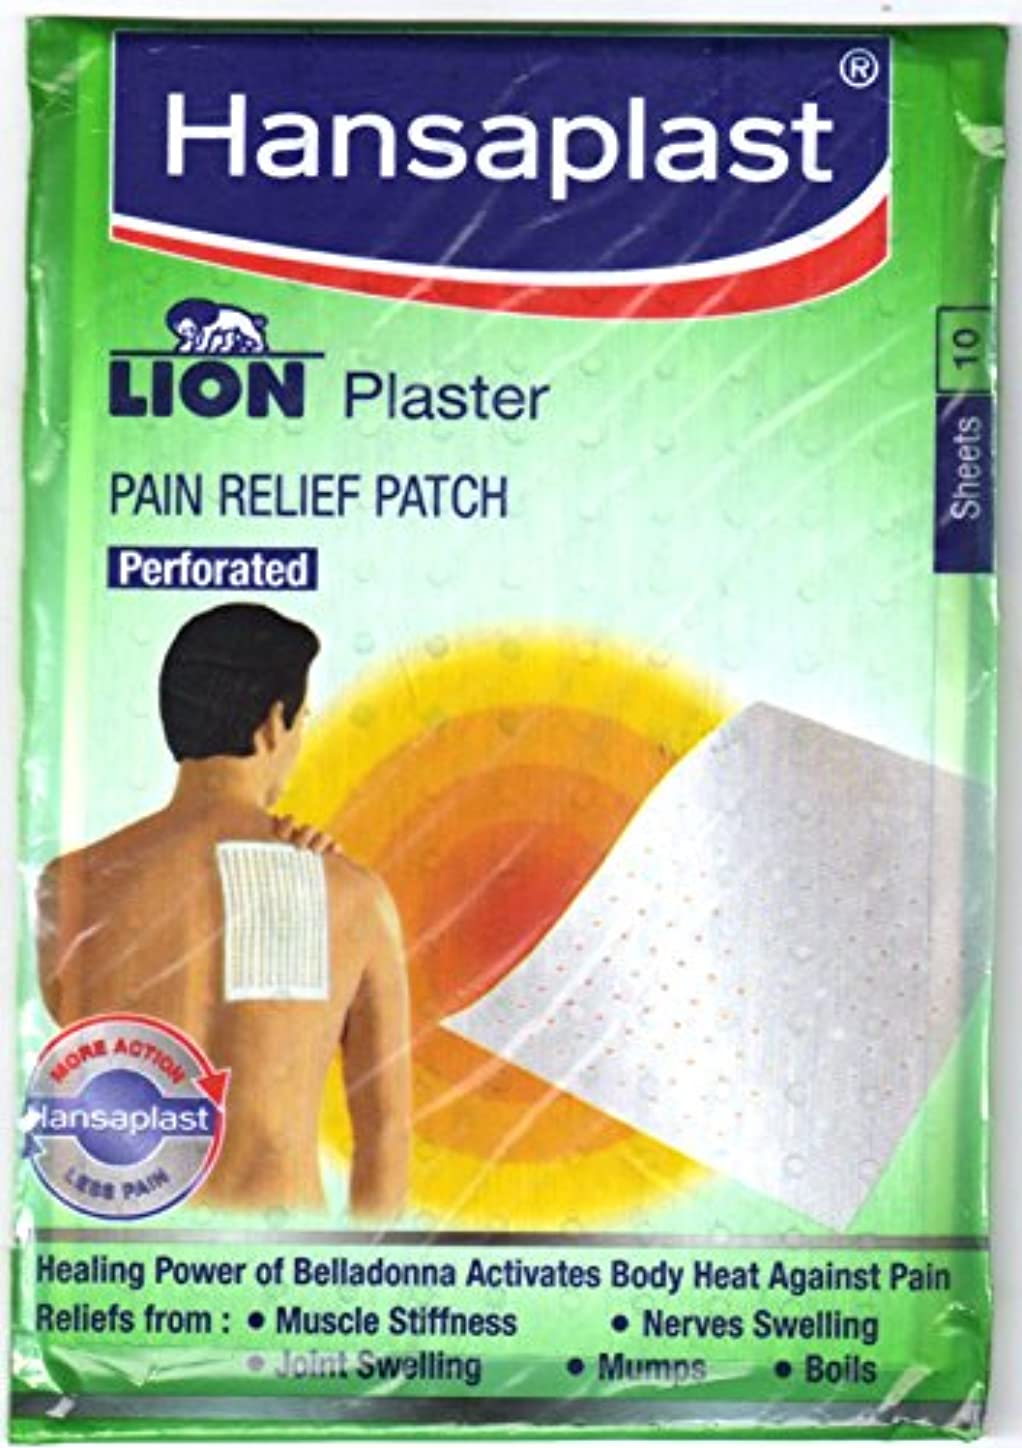 設置濃度スロープHansaplast Lion plaster (Belladonna) 3 pack of 30 Sheets Pain Relief Patch